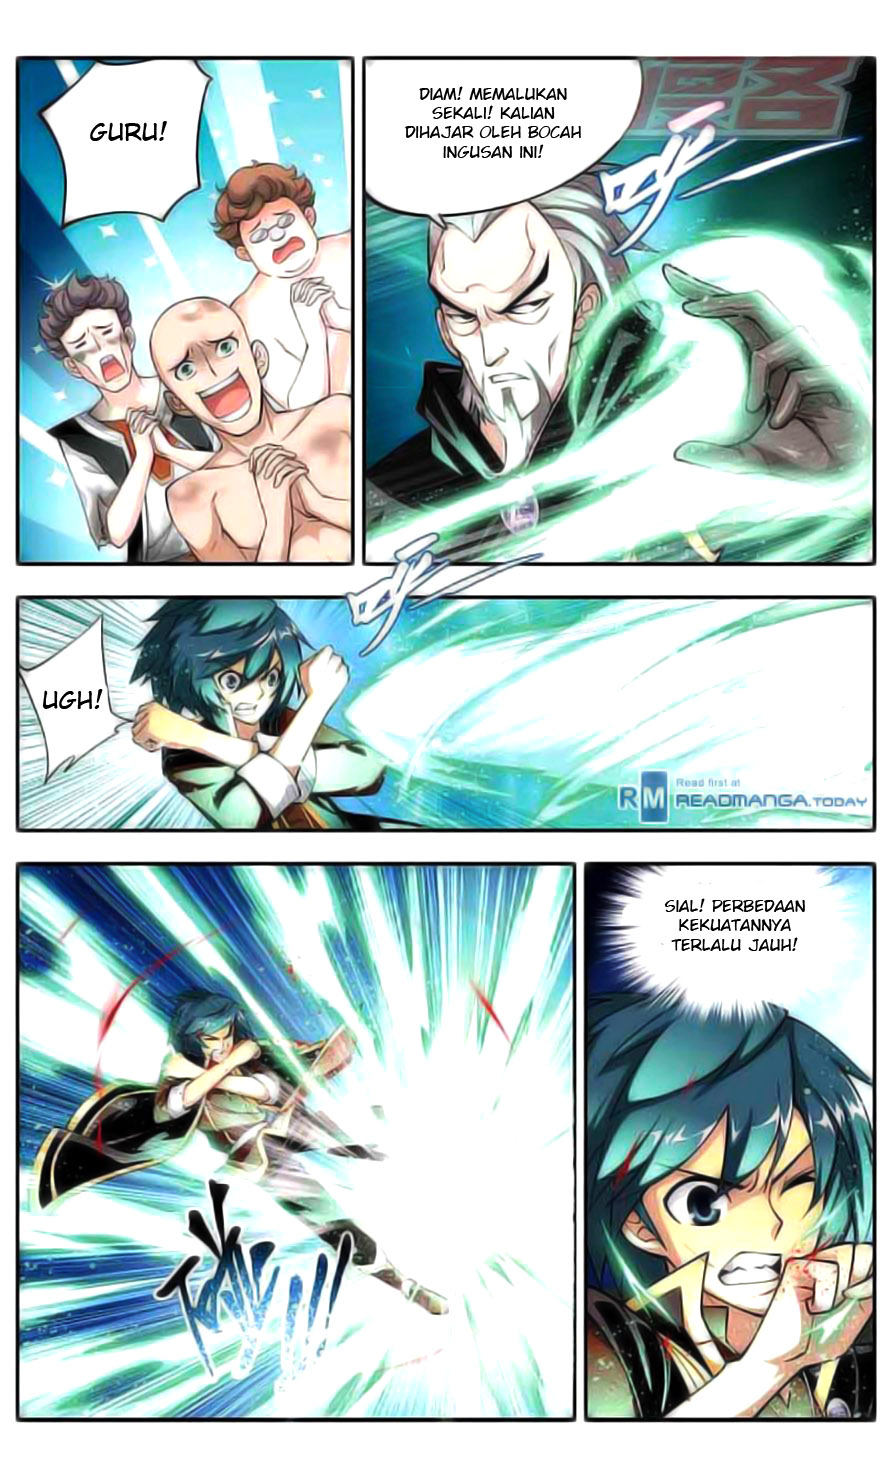 Dilarang COPAS - situs resmi www.mangacanblog.com - Komik battle through heaven 038 - chapter 38 39 Indonesia battle through heaven 038 - chapter 38 Terbaru 9|Baca Manga Komik Indonesia|Mangacan